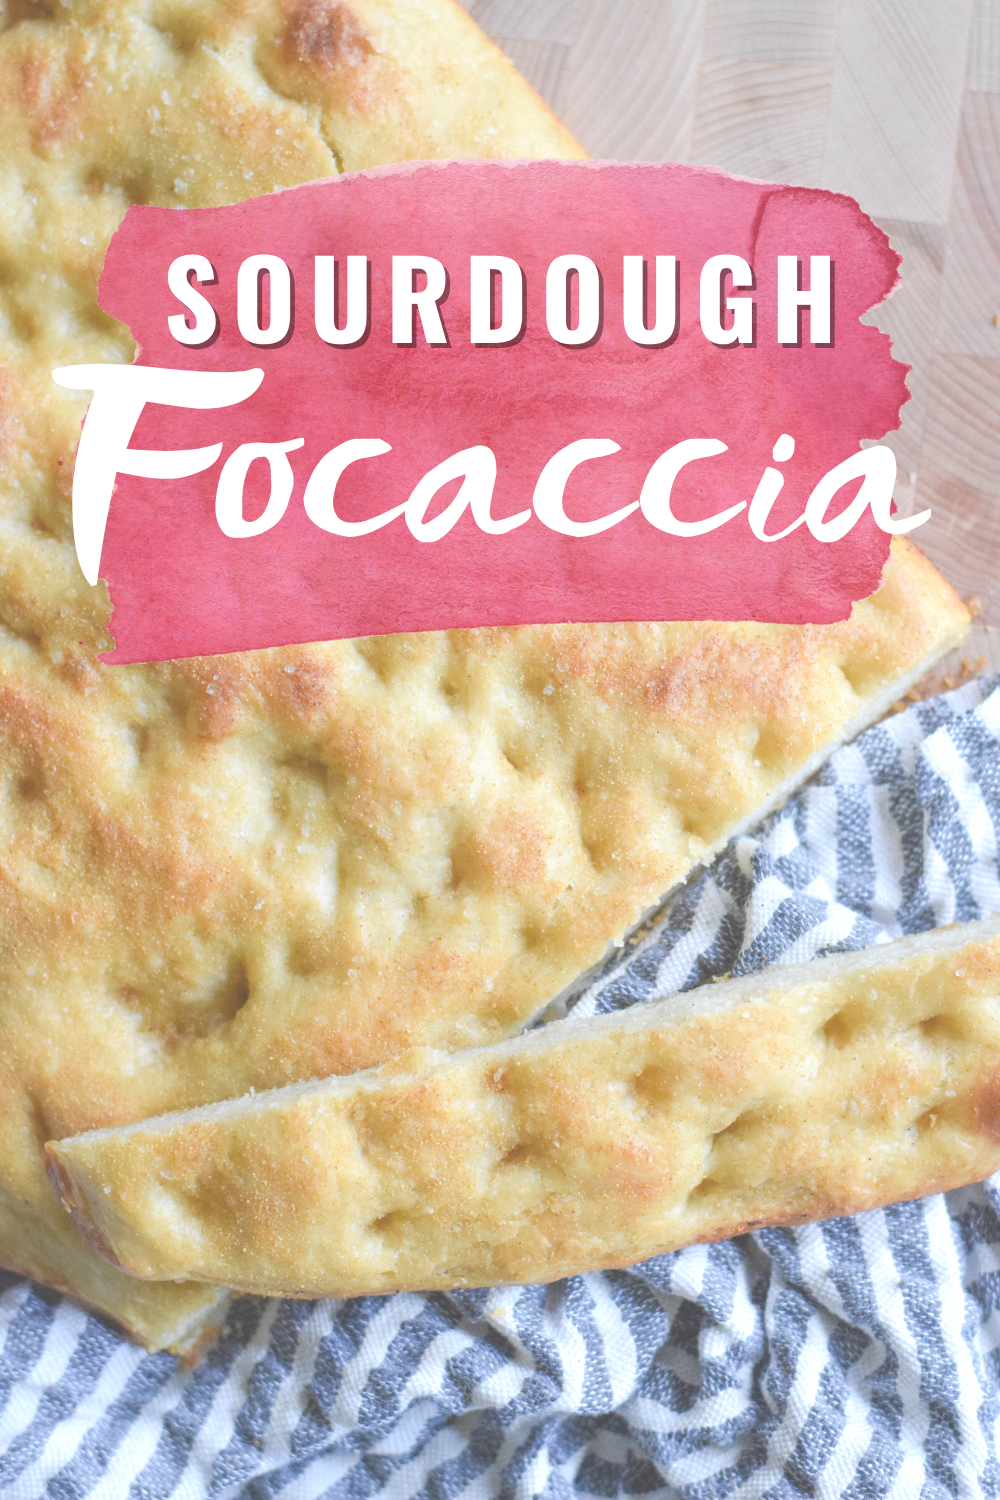 Sourdough Focaccia - Looking for a delicious and easy sourdough focaccia recipe? This recipe from BAKED Blog has you covered! | Sourdough Focaccia Recipe - Sourdough Focaccia Bread Recipe - Sourdough Starter Bread Recipe - Easy Focaccia Recipe